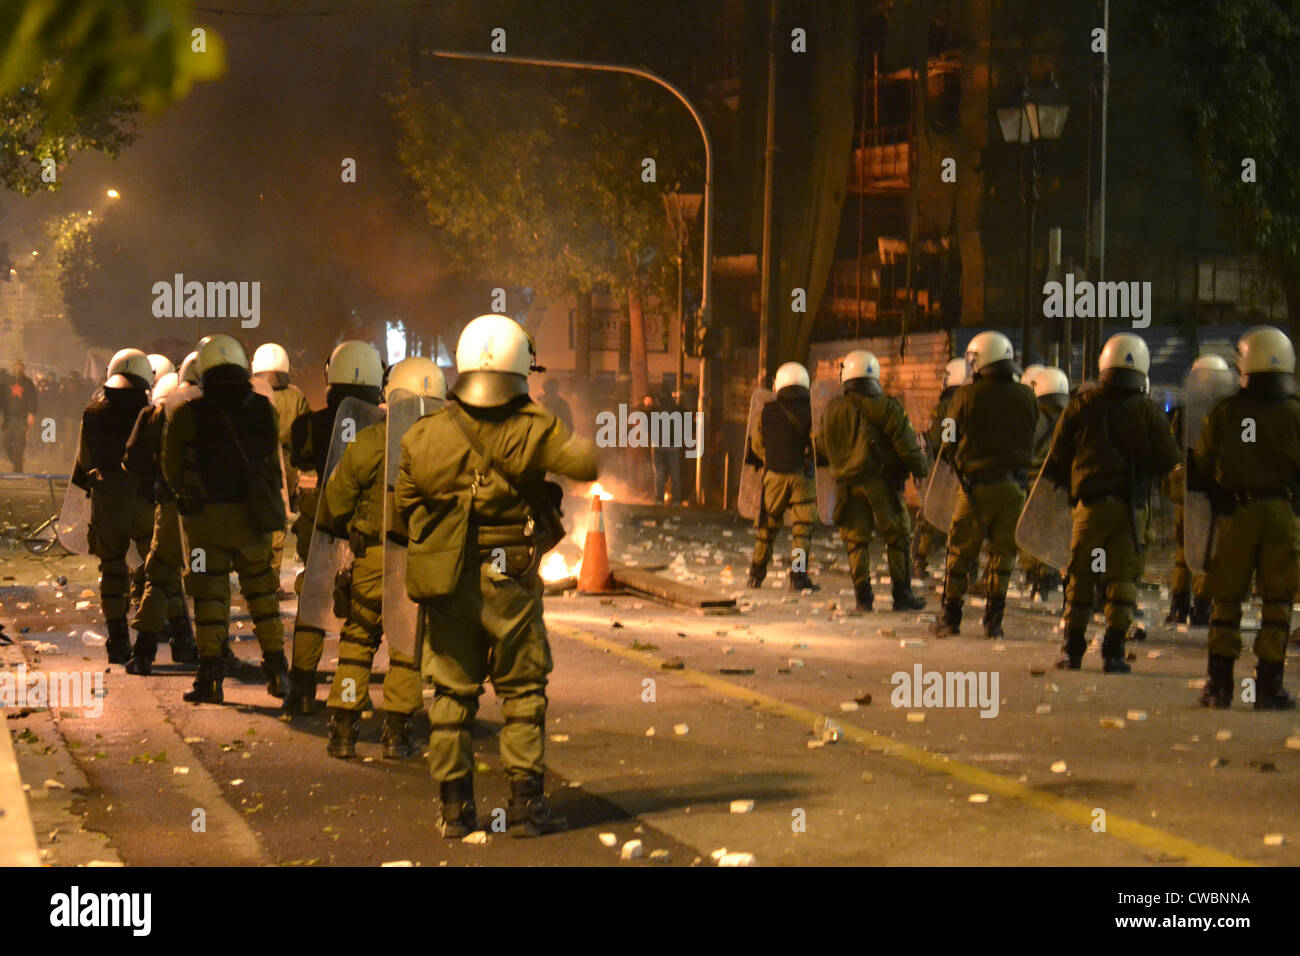 Riot police confront demonstrators during a massive anti austerity rally with serious clashes. - Stock Image